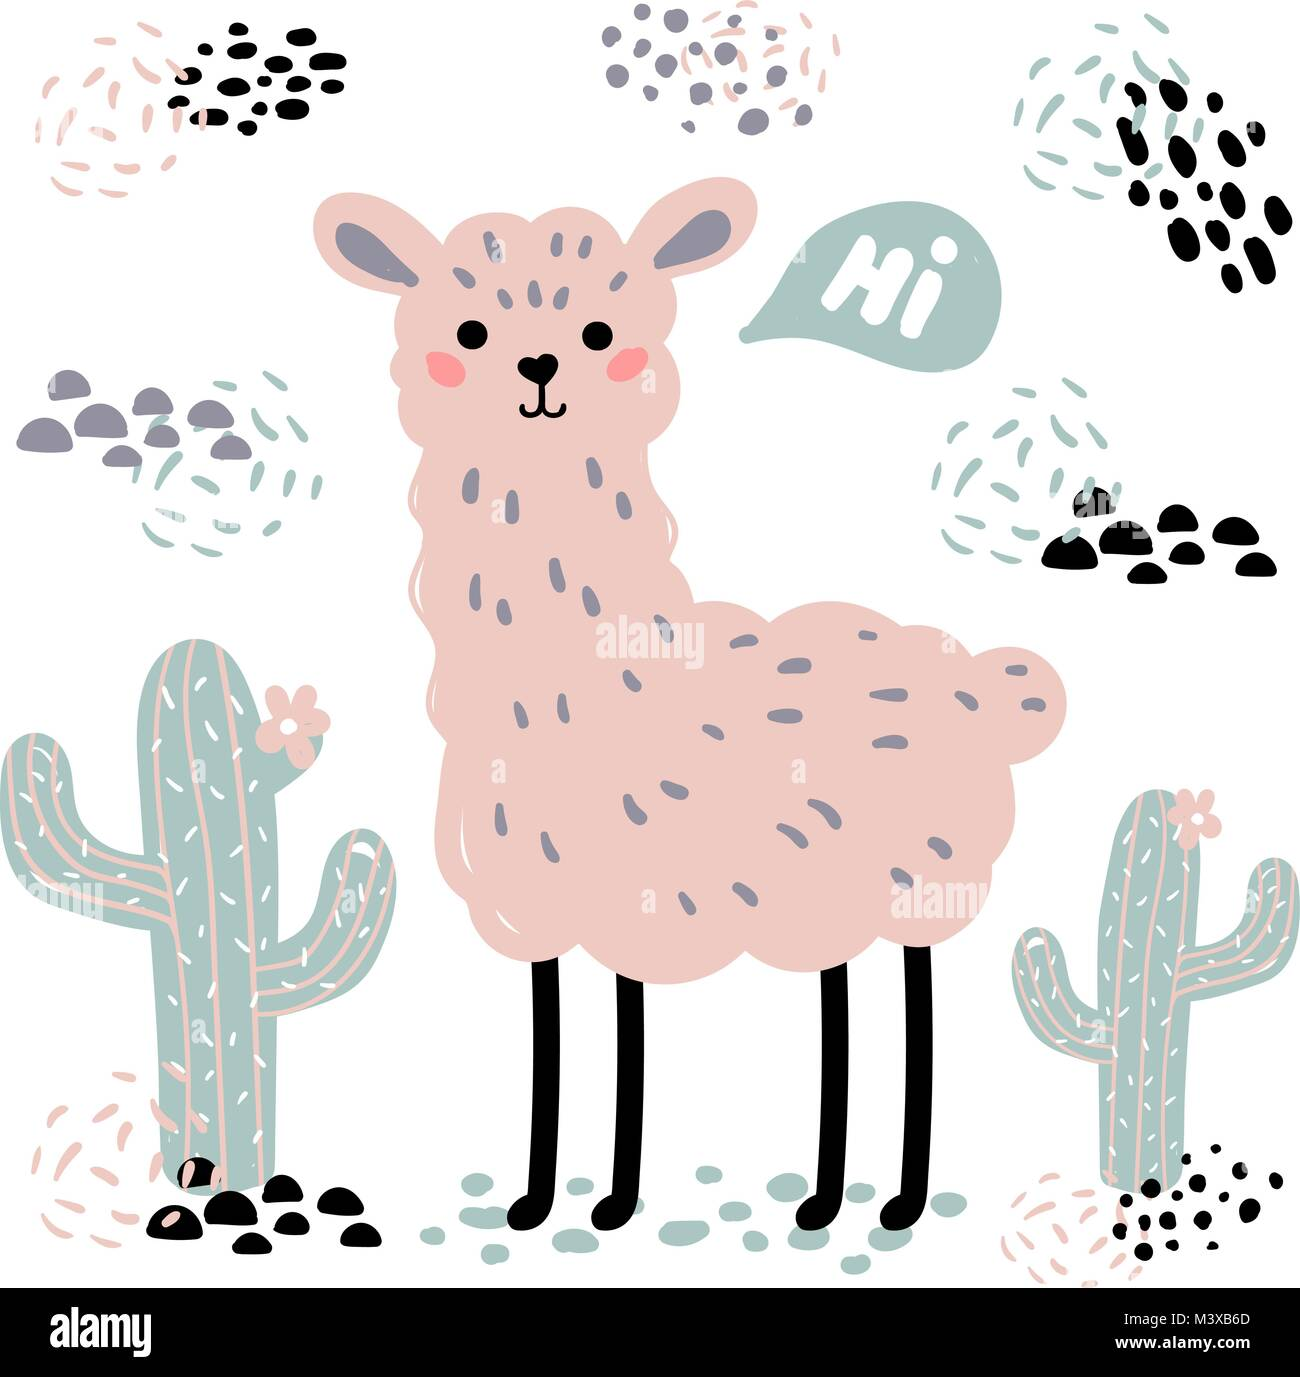 Pink lama alpaca with hi text, surrounded by desert cactuses on white background. Wild or zoo cute cartoon fluffy Stock Vector